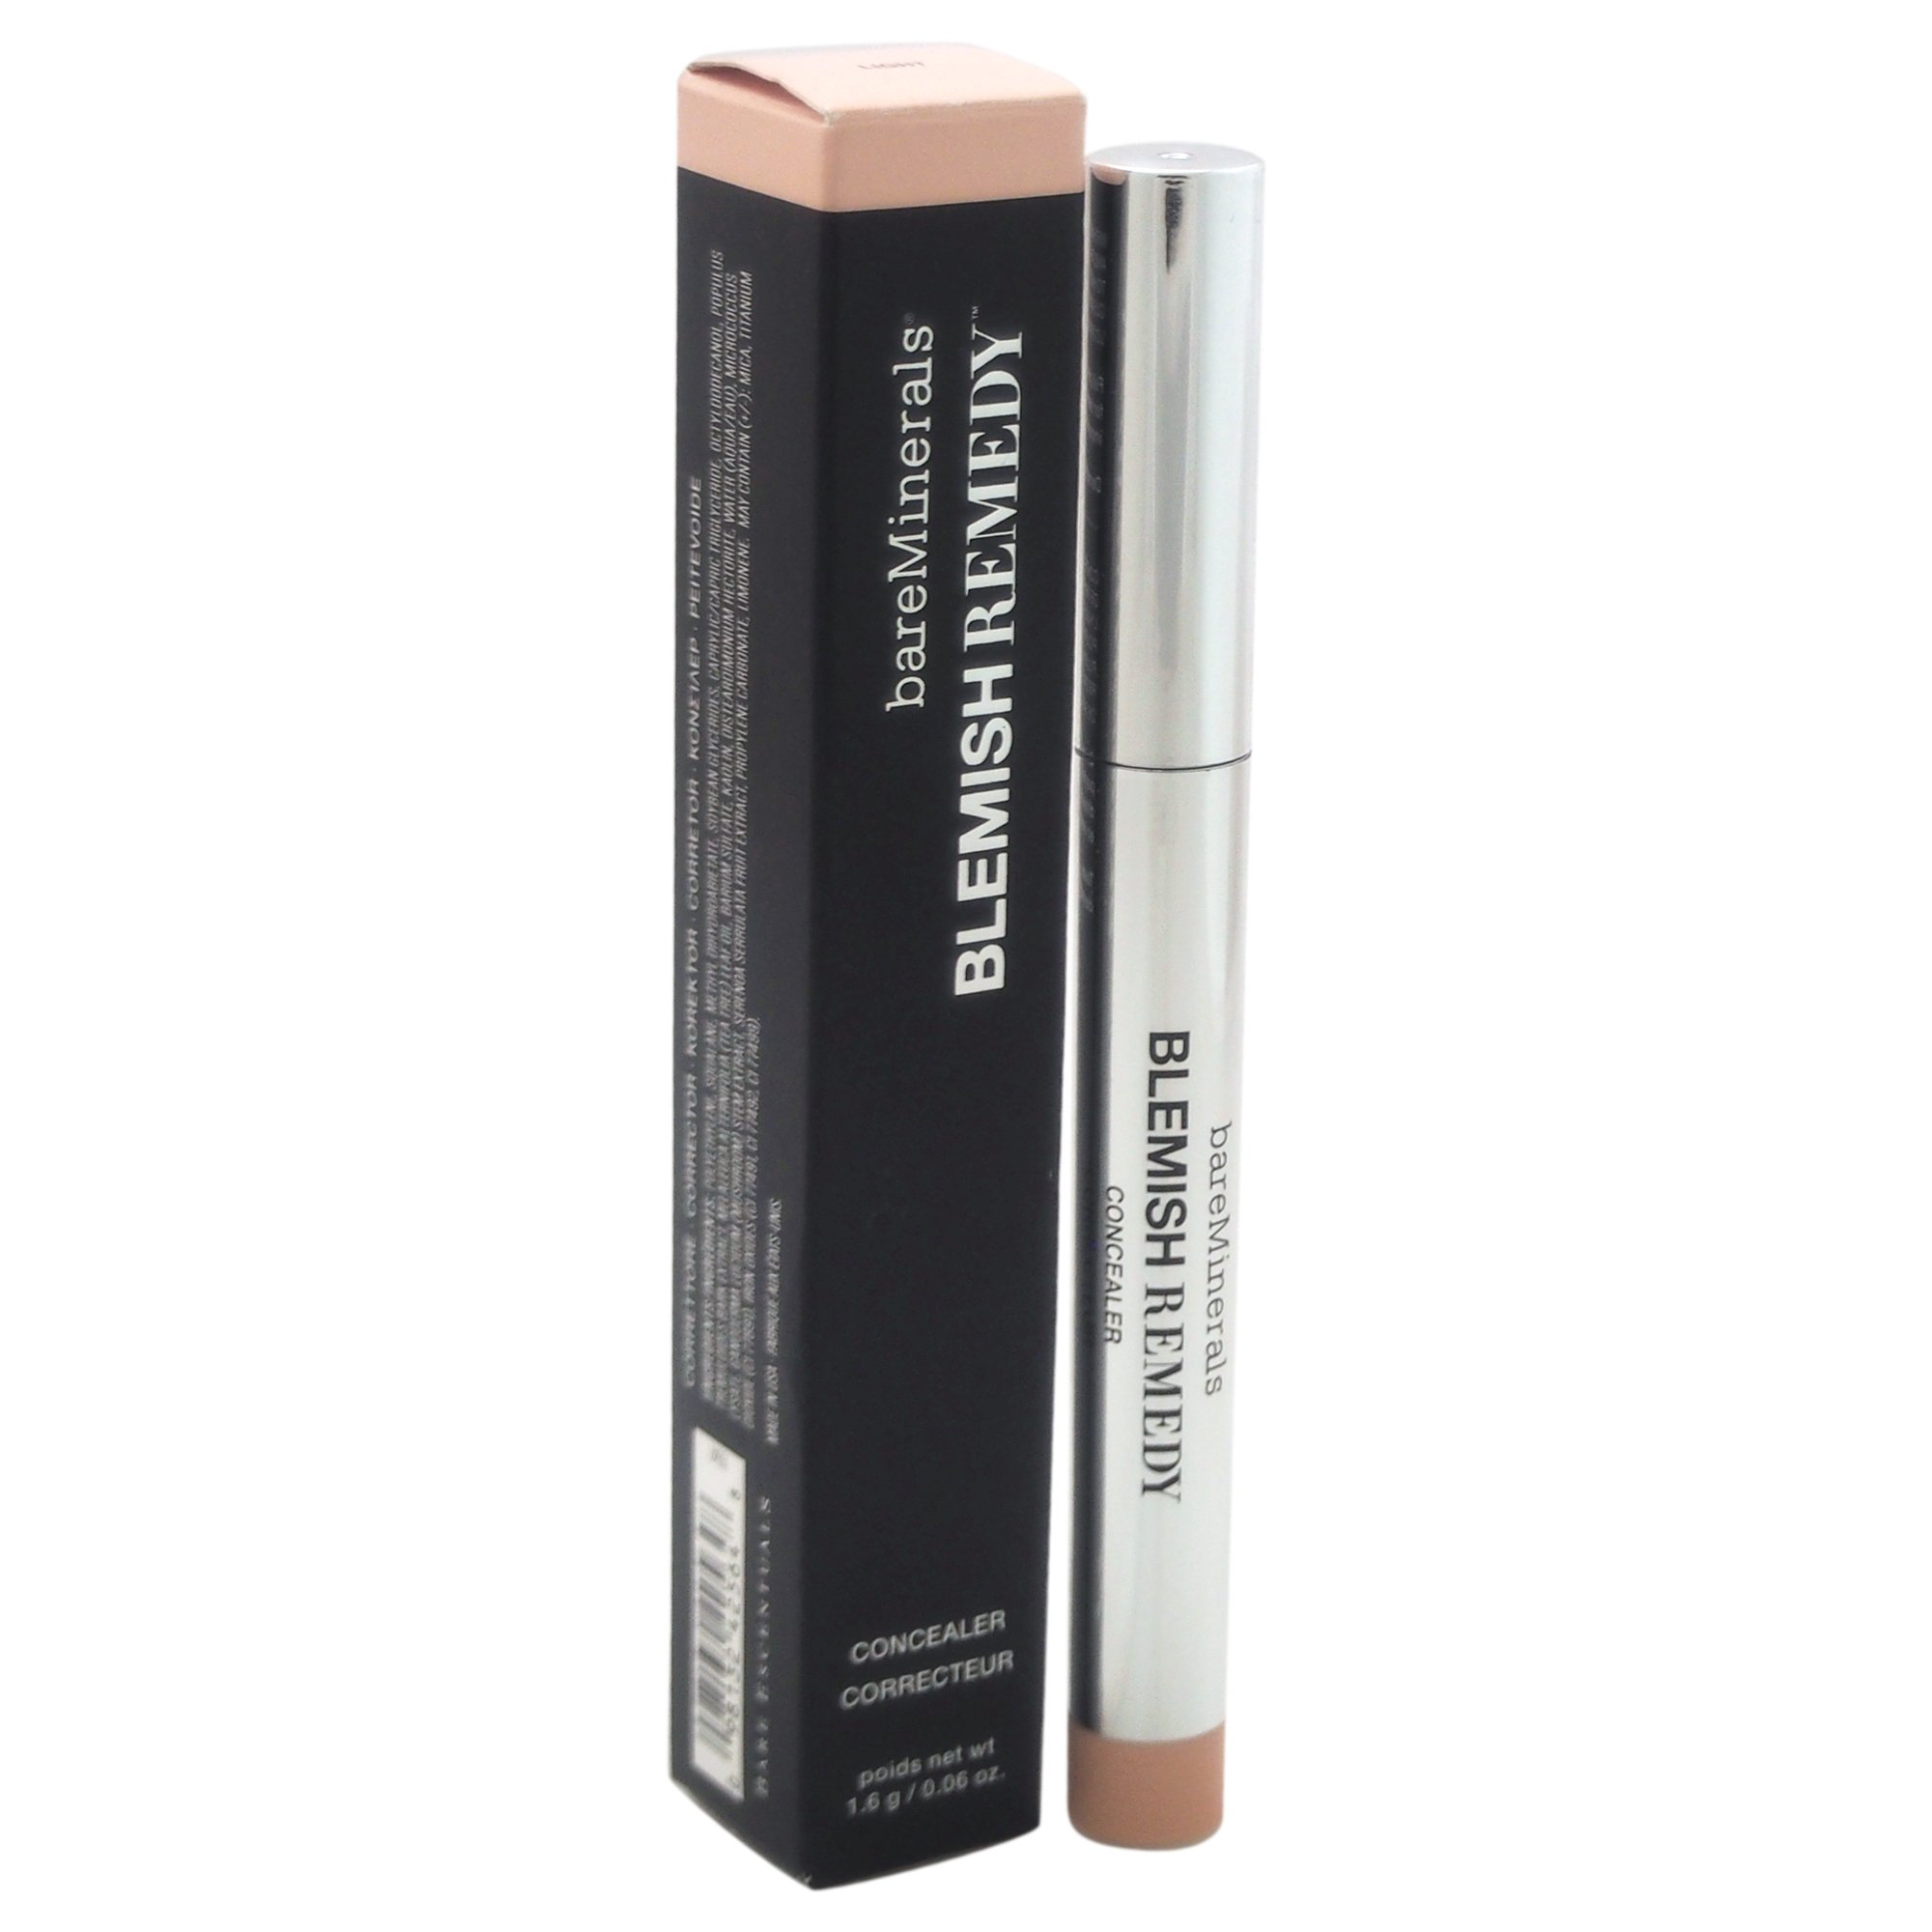 bareMinerals Blemish Remedy Concealer, Light, 0.06 Ounce